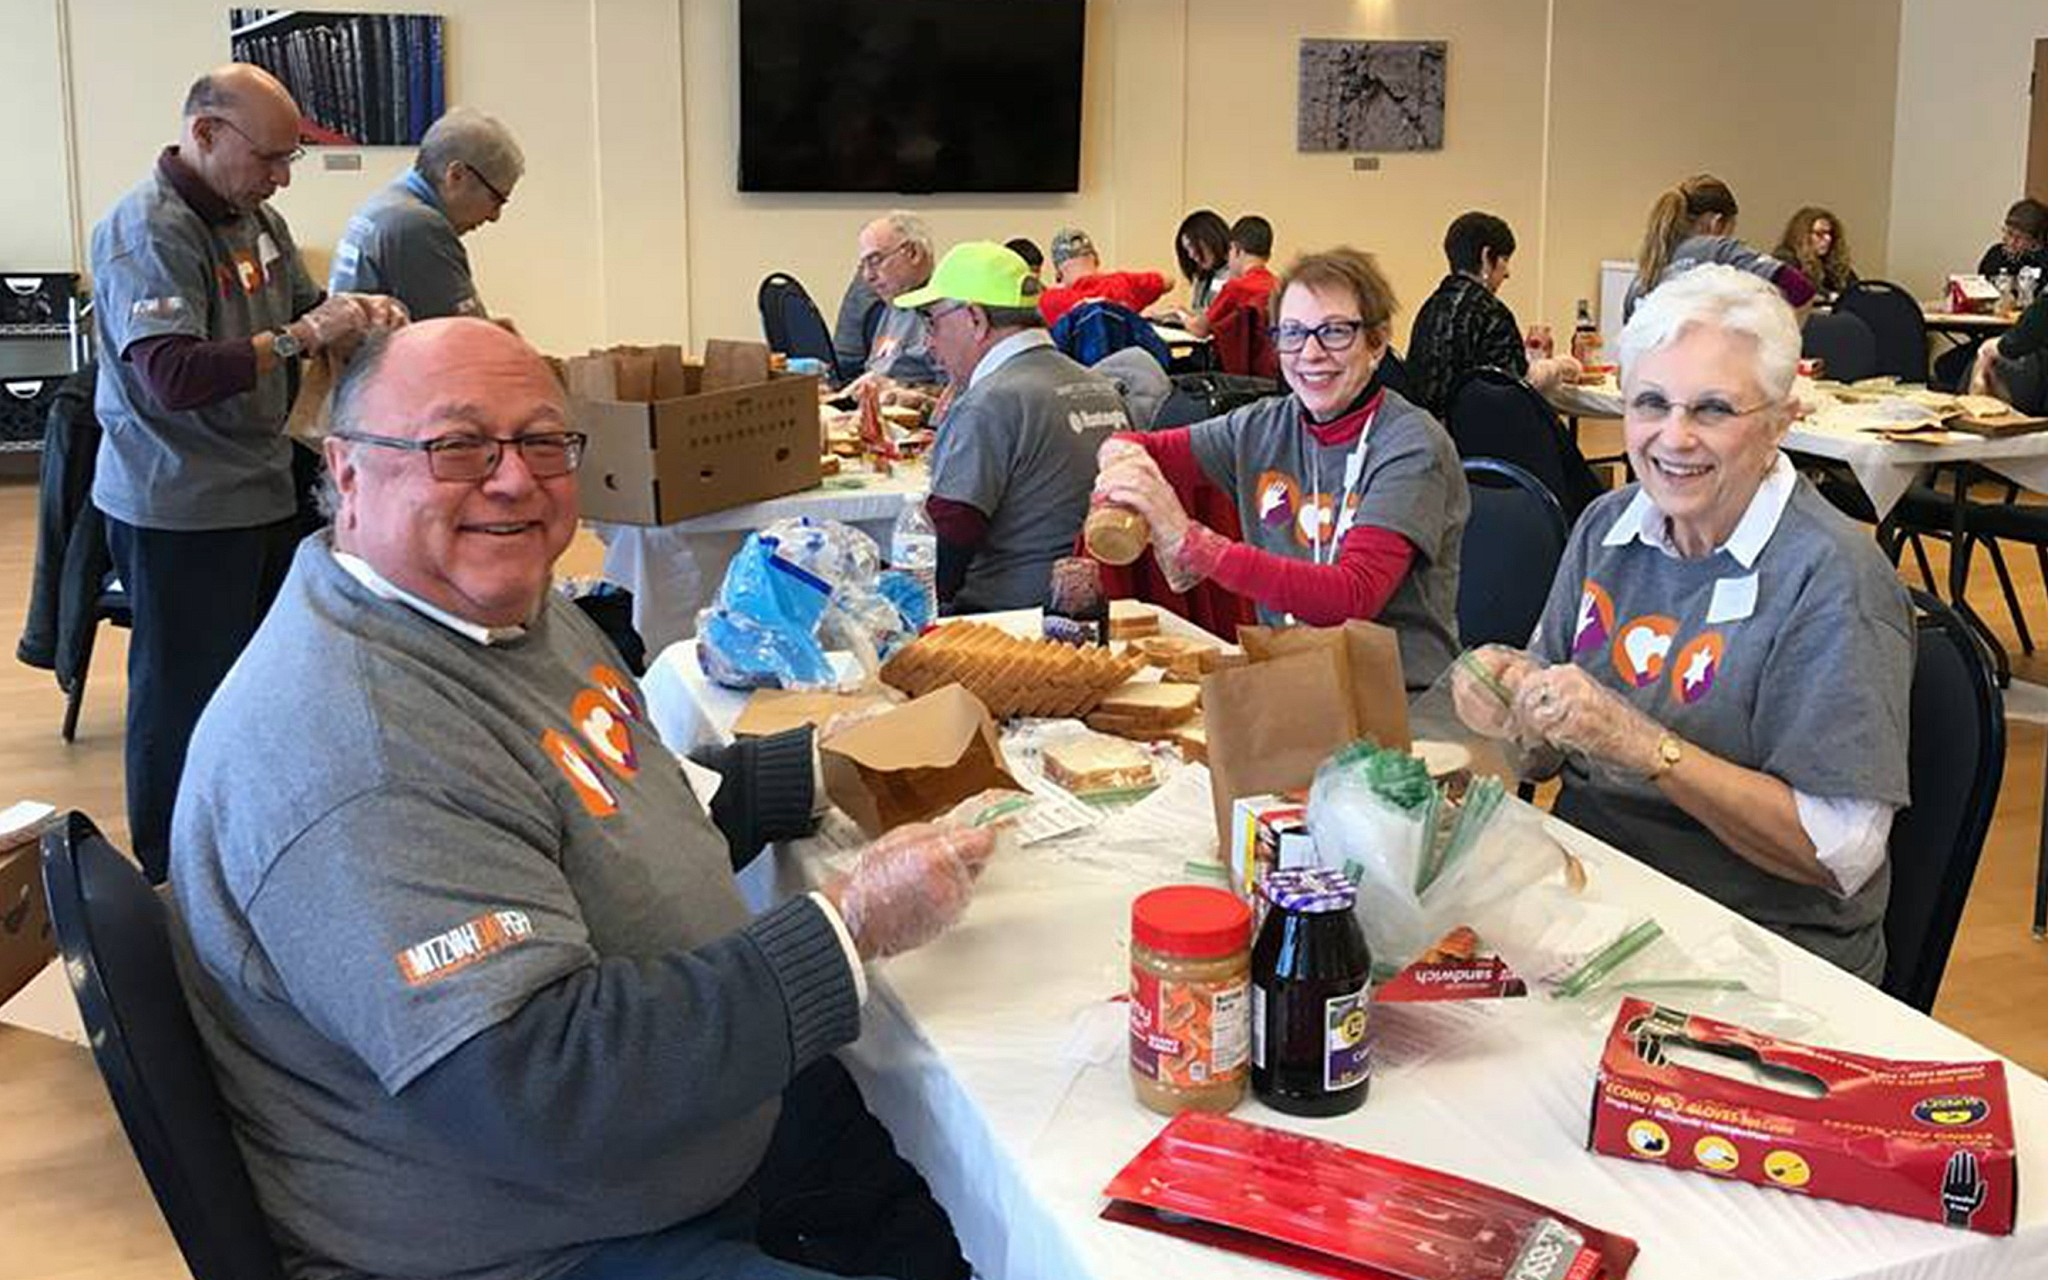 Volunteers from the South Hills Jewish community prepare items for food pantries on Mitzvah Day, 2017. Photo provided by the Jewish Federation of Greater Pittsburgh.